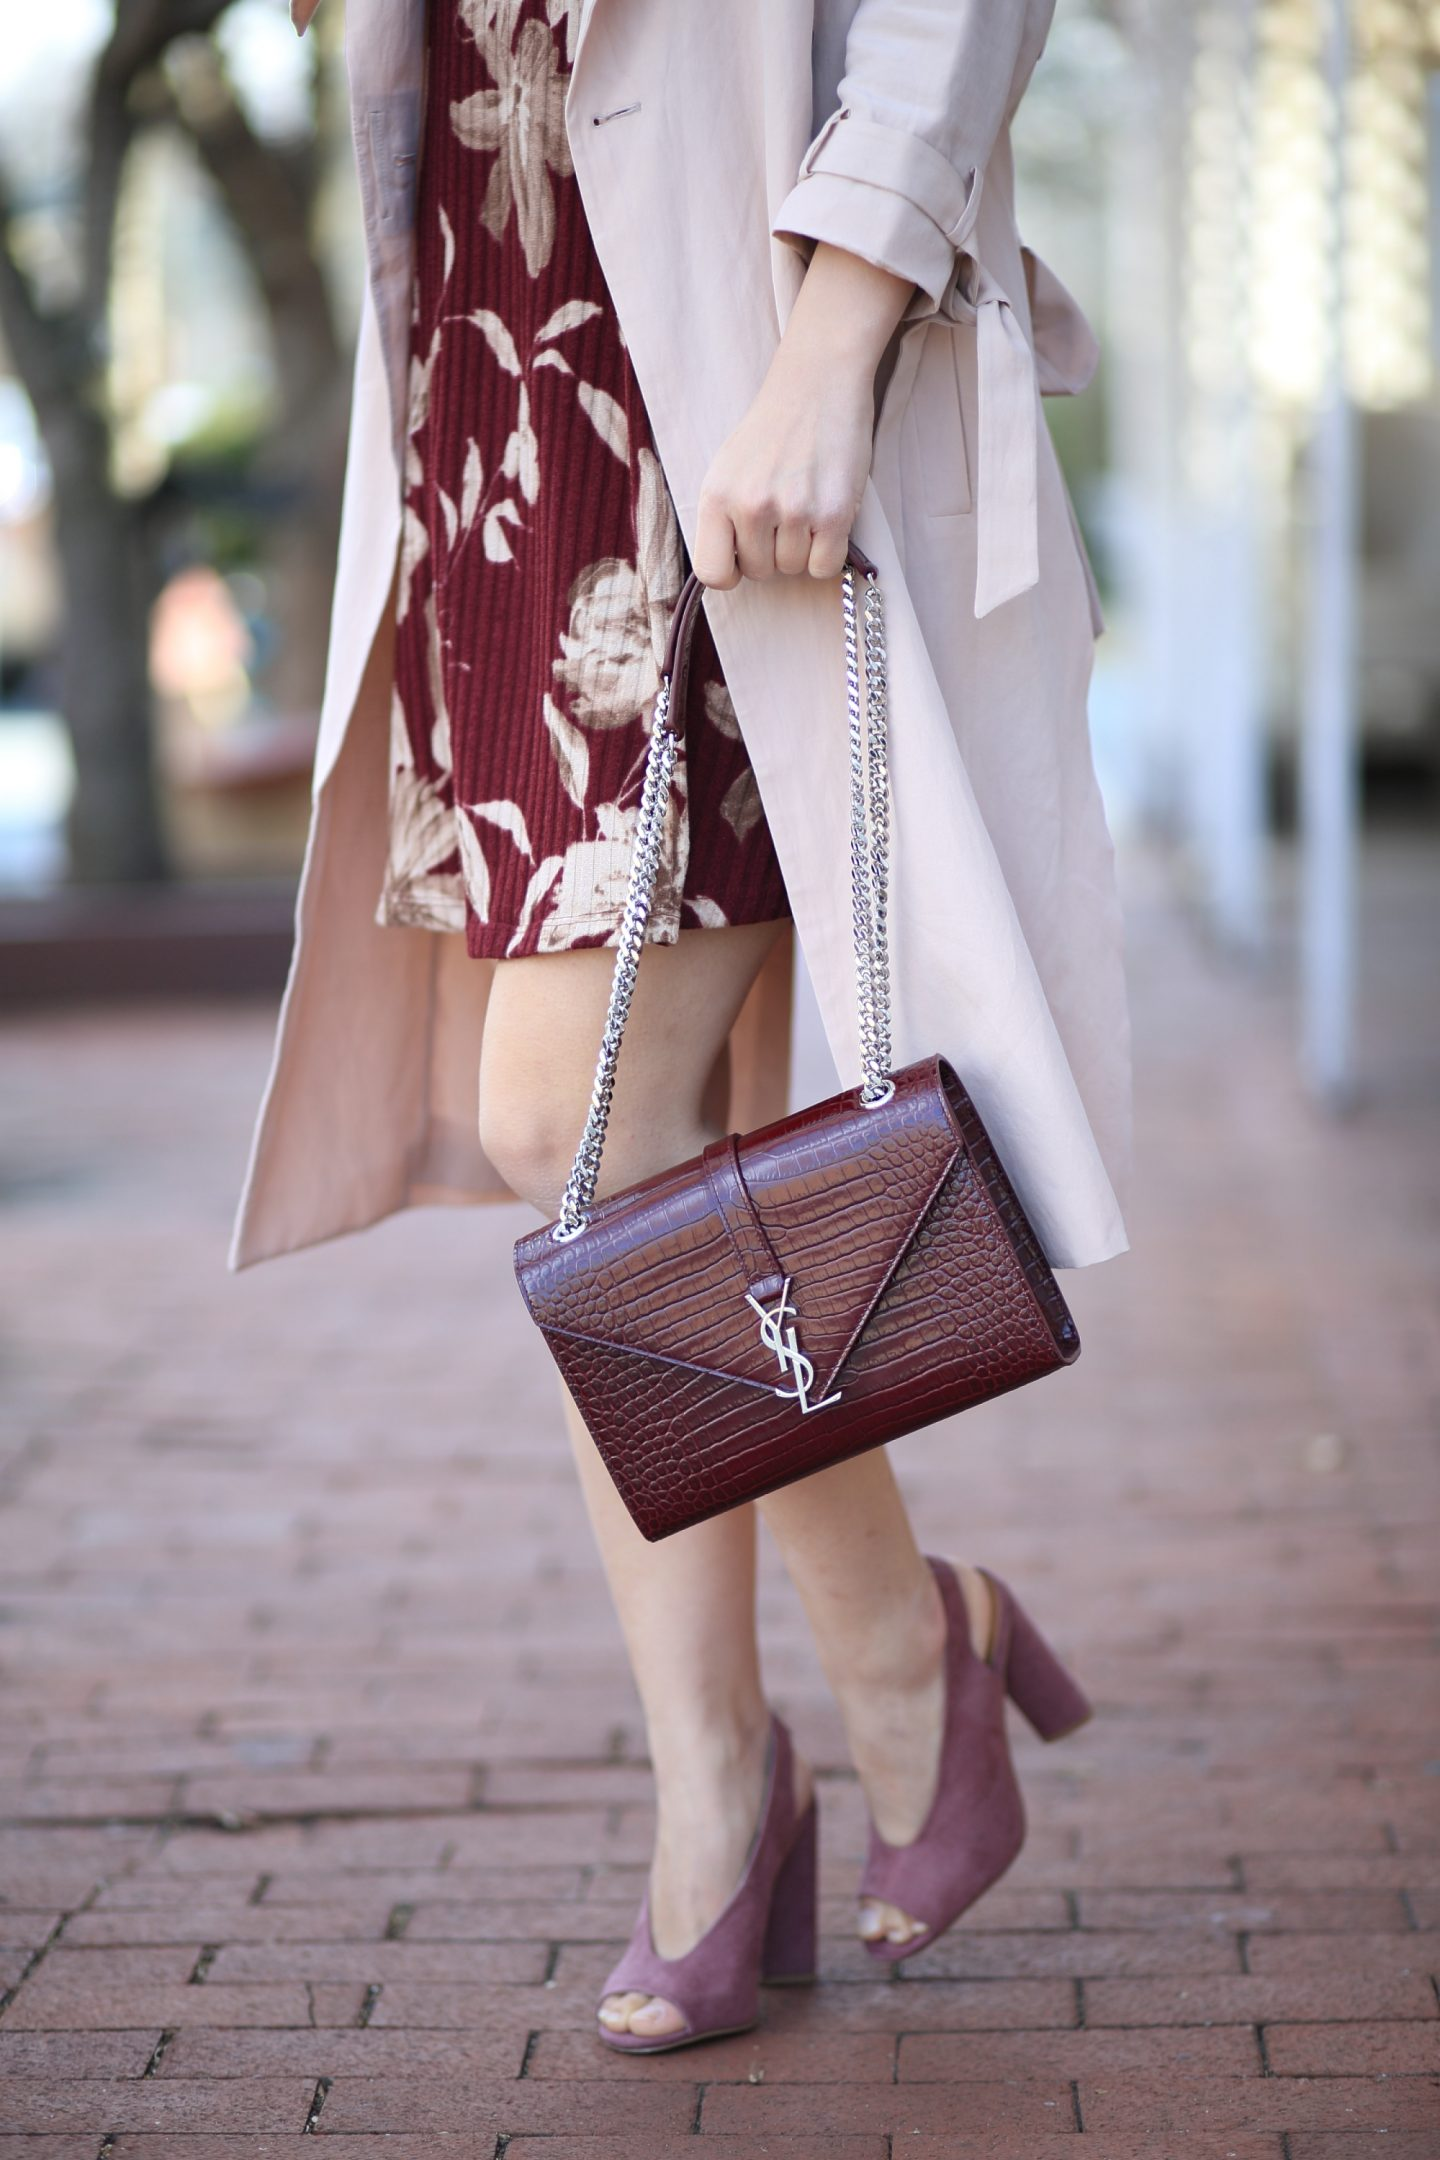 ysl burgundy crossbody bag